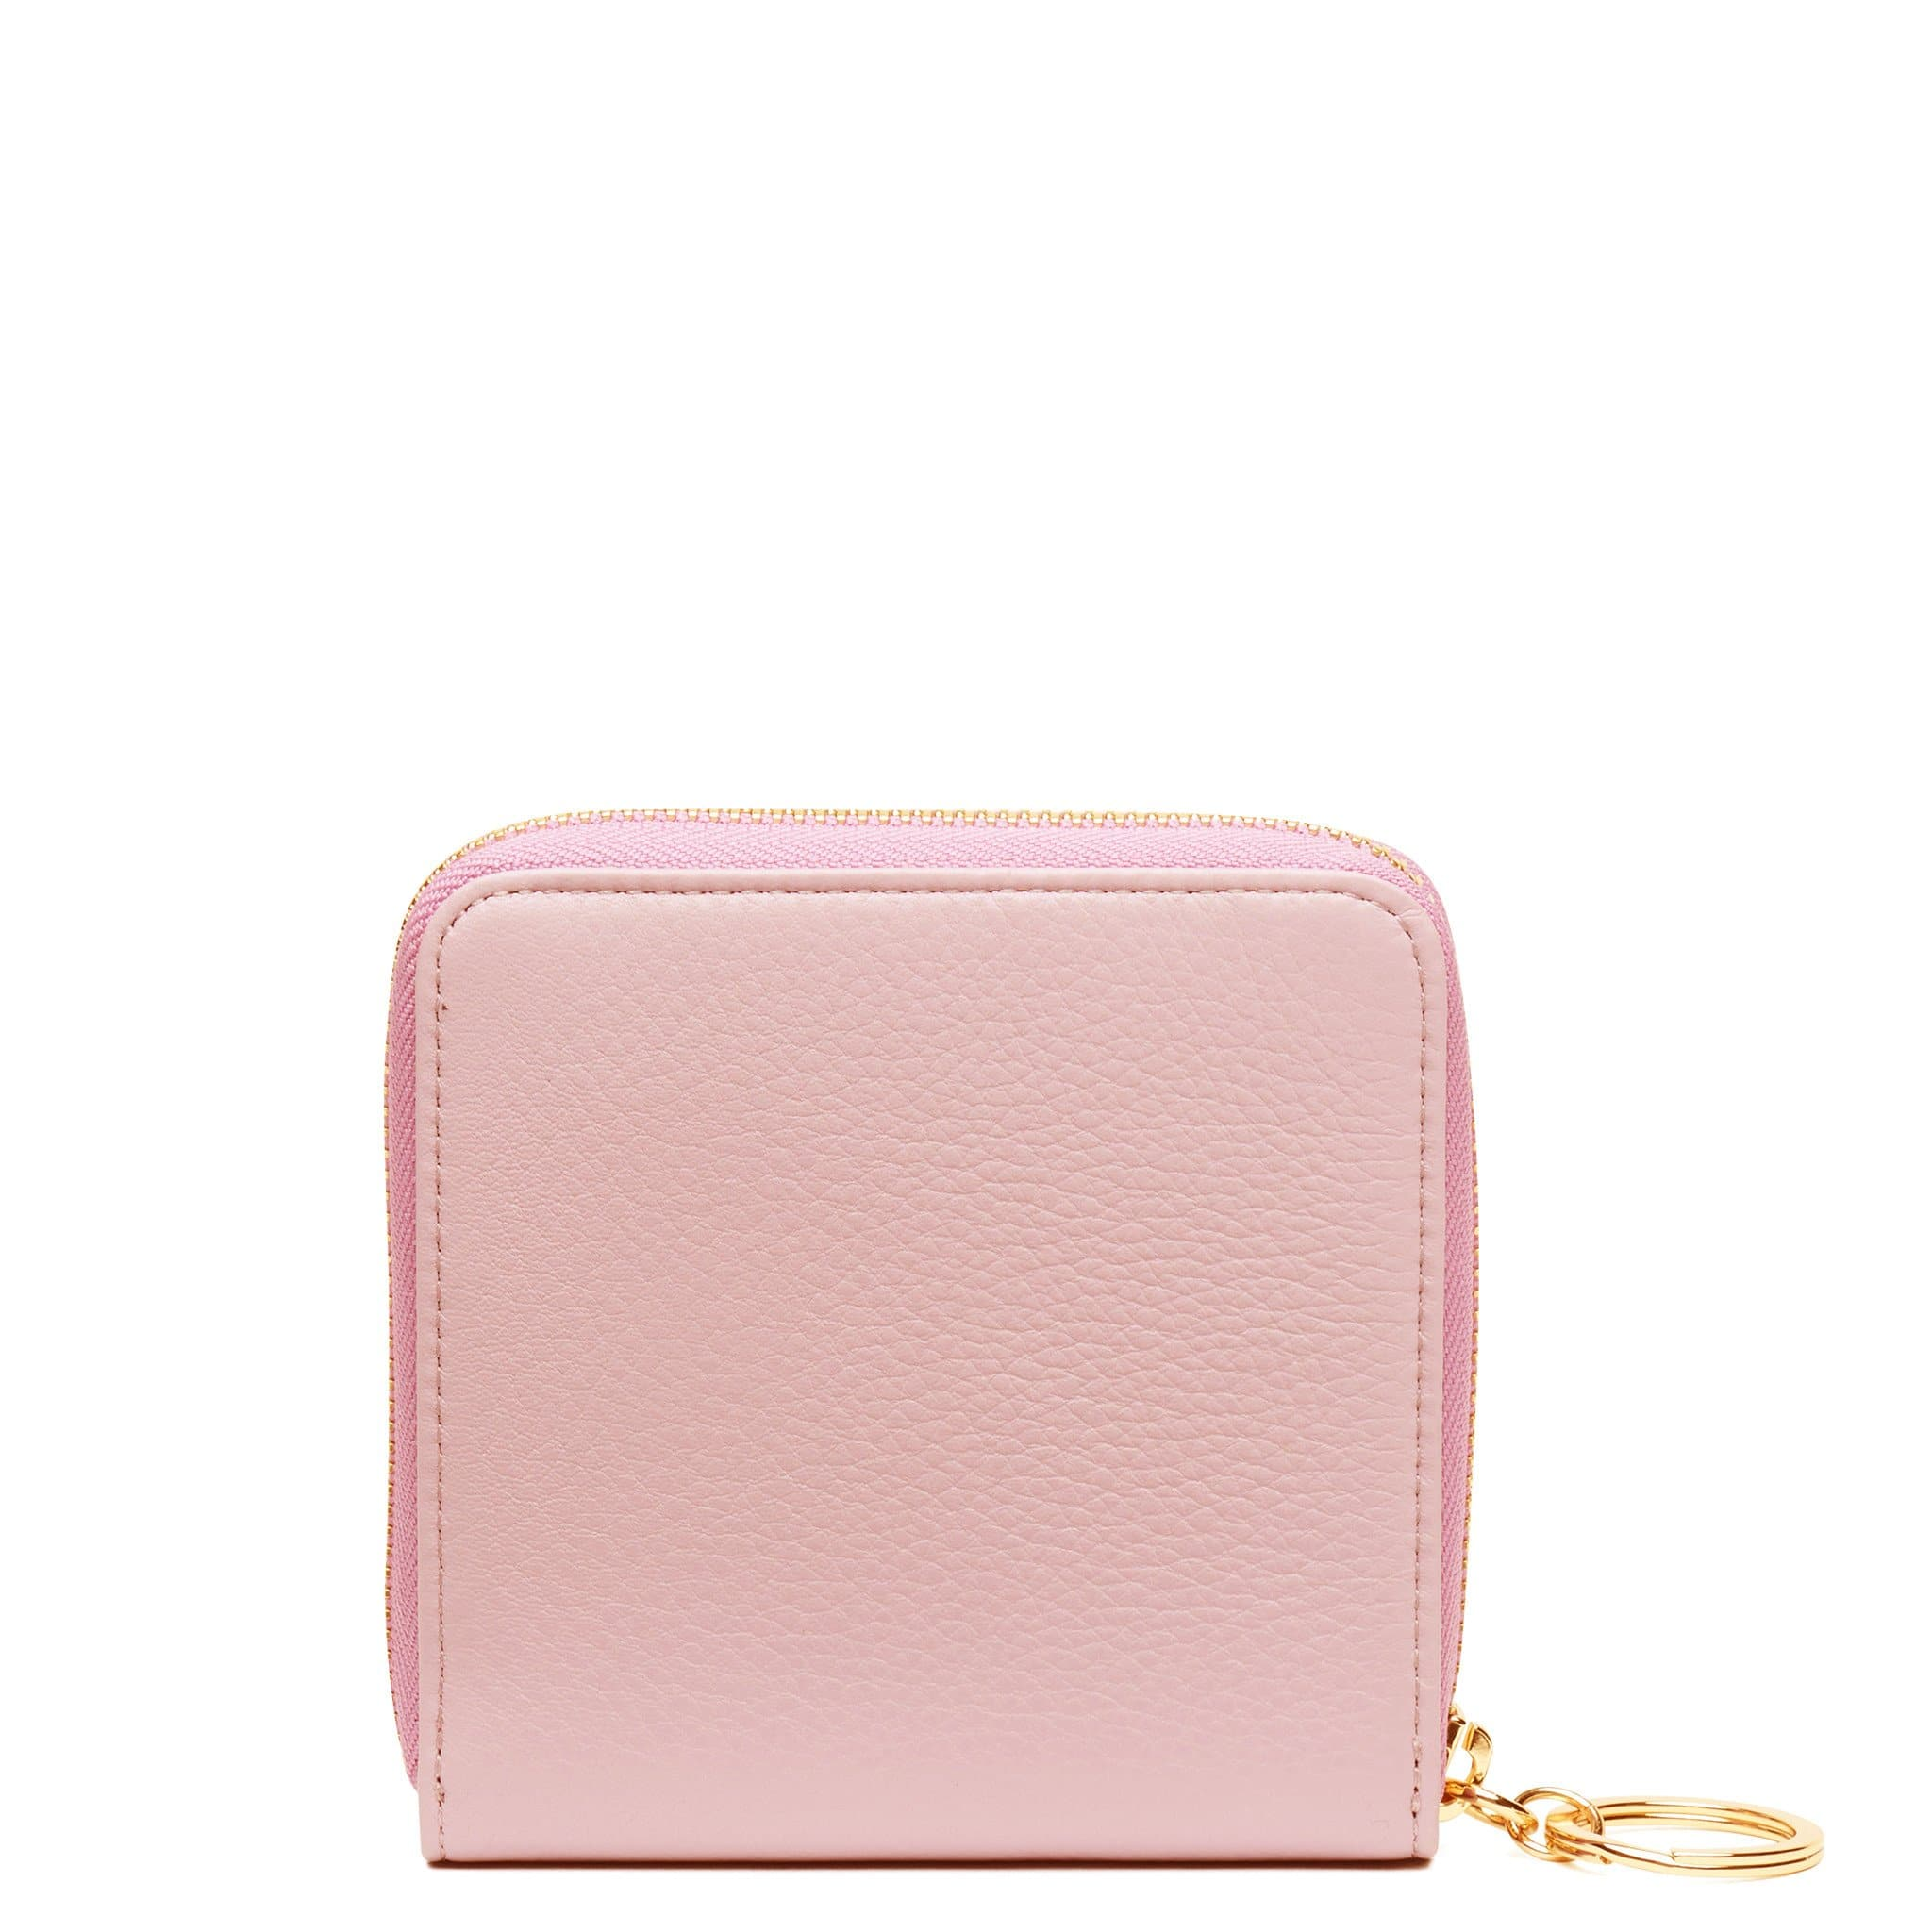 Half Zip Around Wallet - Rose Pink - OAD NEW YORK - 1